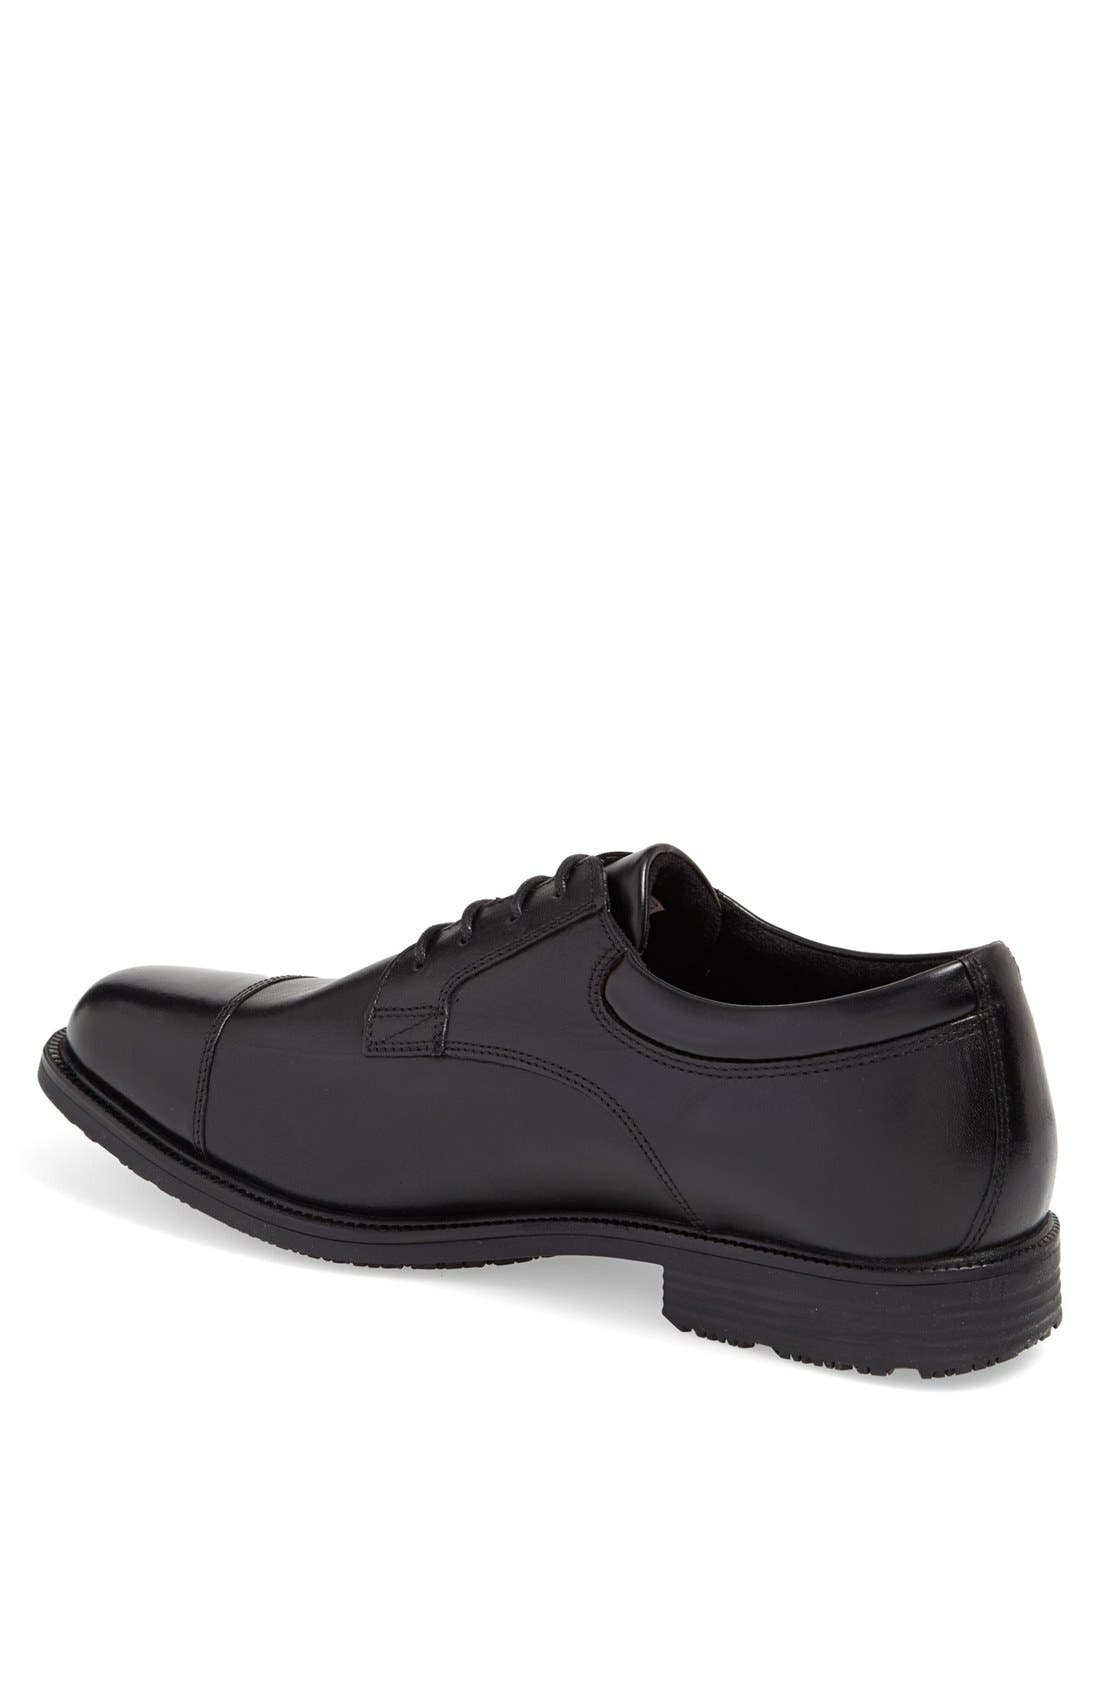 'Essential Details' Waterproof Cap Toe Derby,                             Alternate thumbnail 5, color,                             BLACK